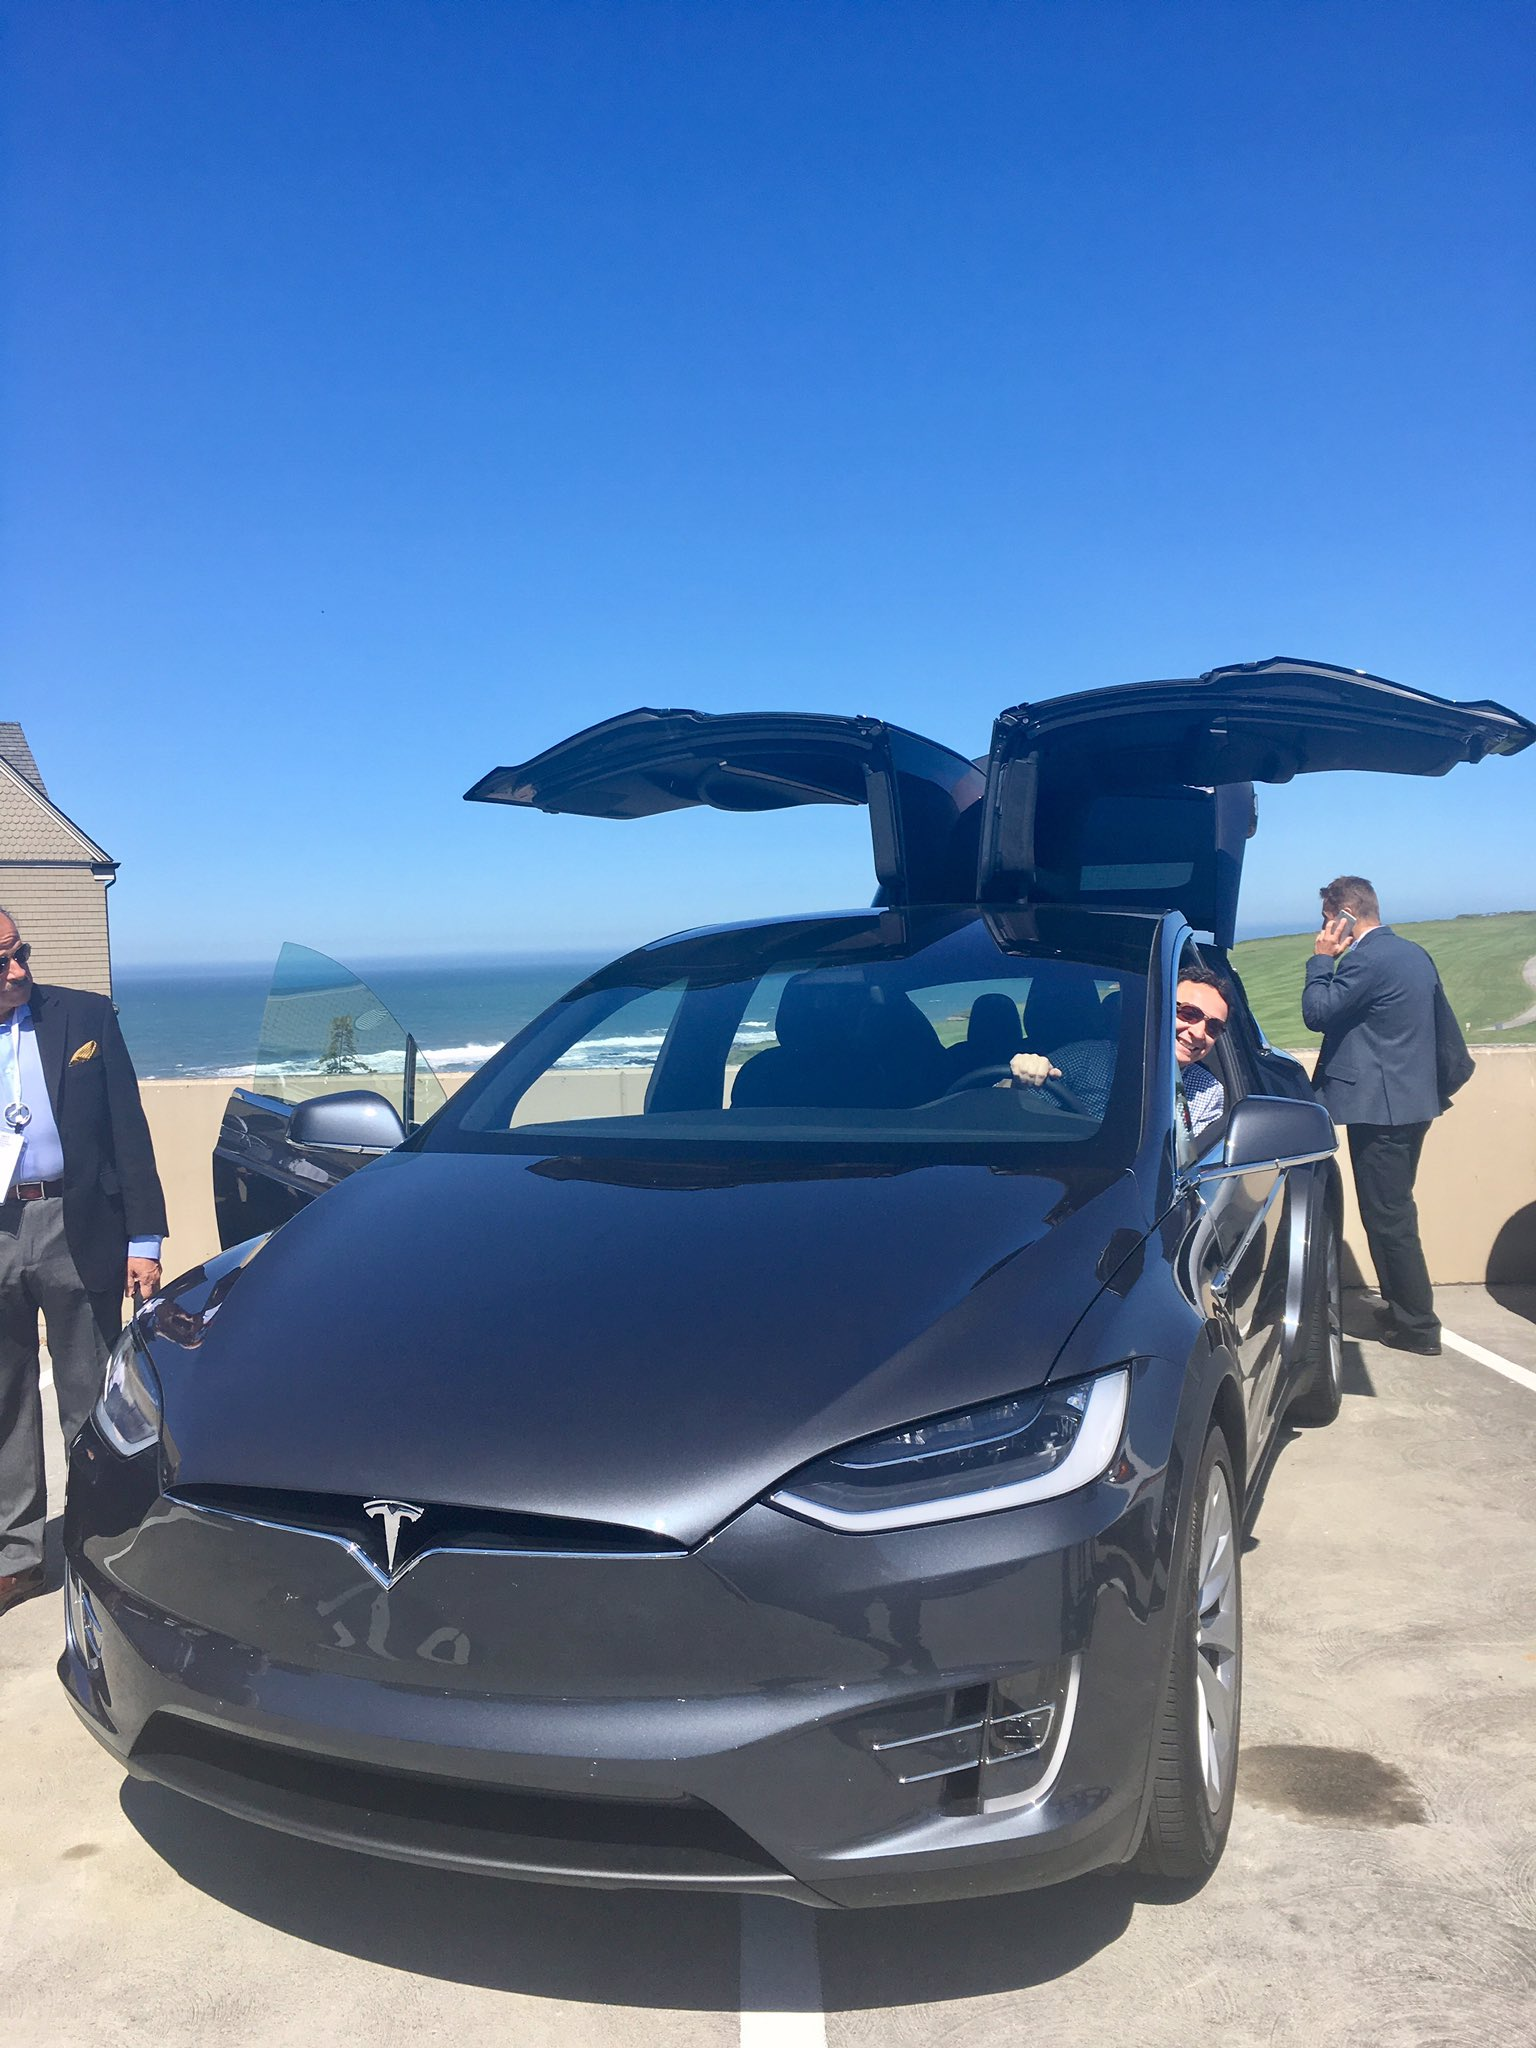 @EndeavorBG Managing Director @MomchilVassilev tests out a @TeslaMotors car #EndeavorRetreat https://t.co/aFVzBAq5m7